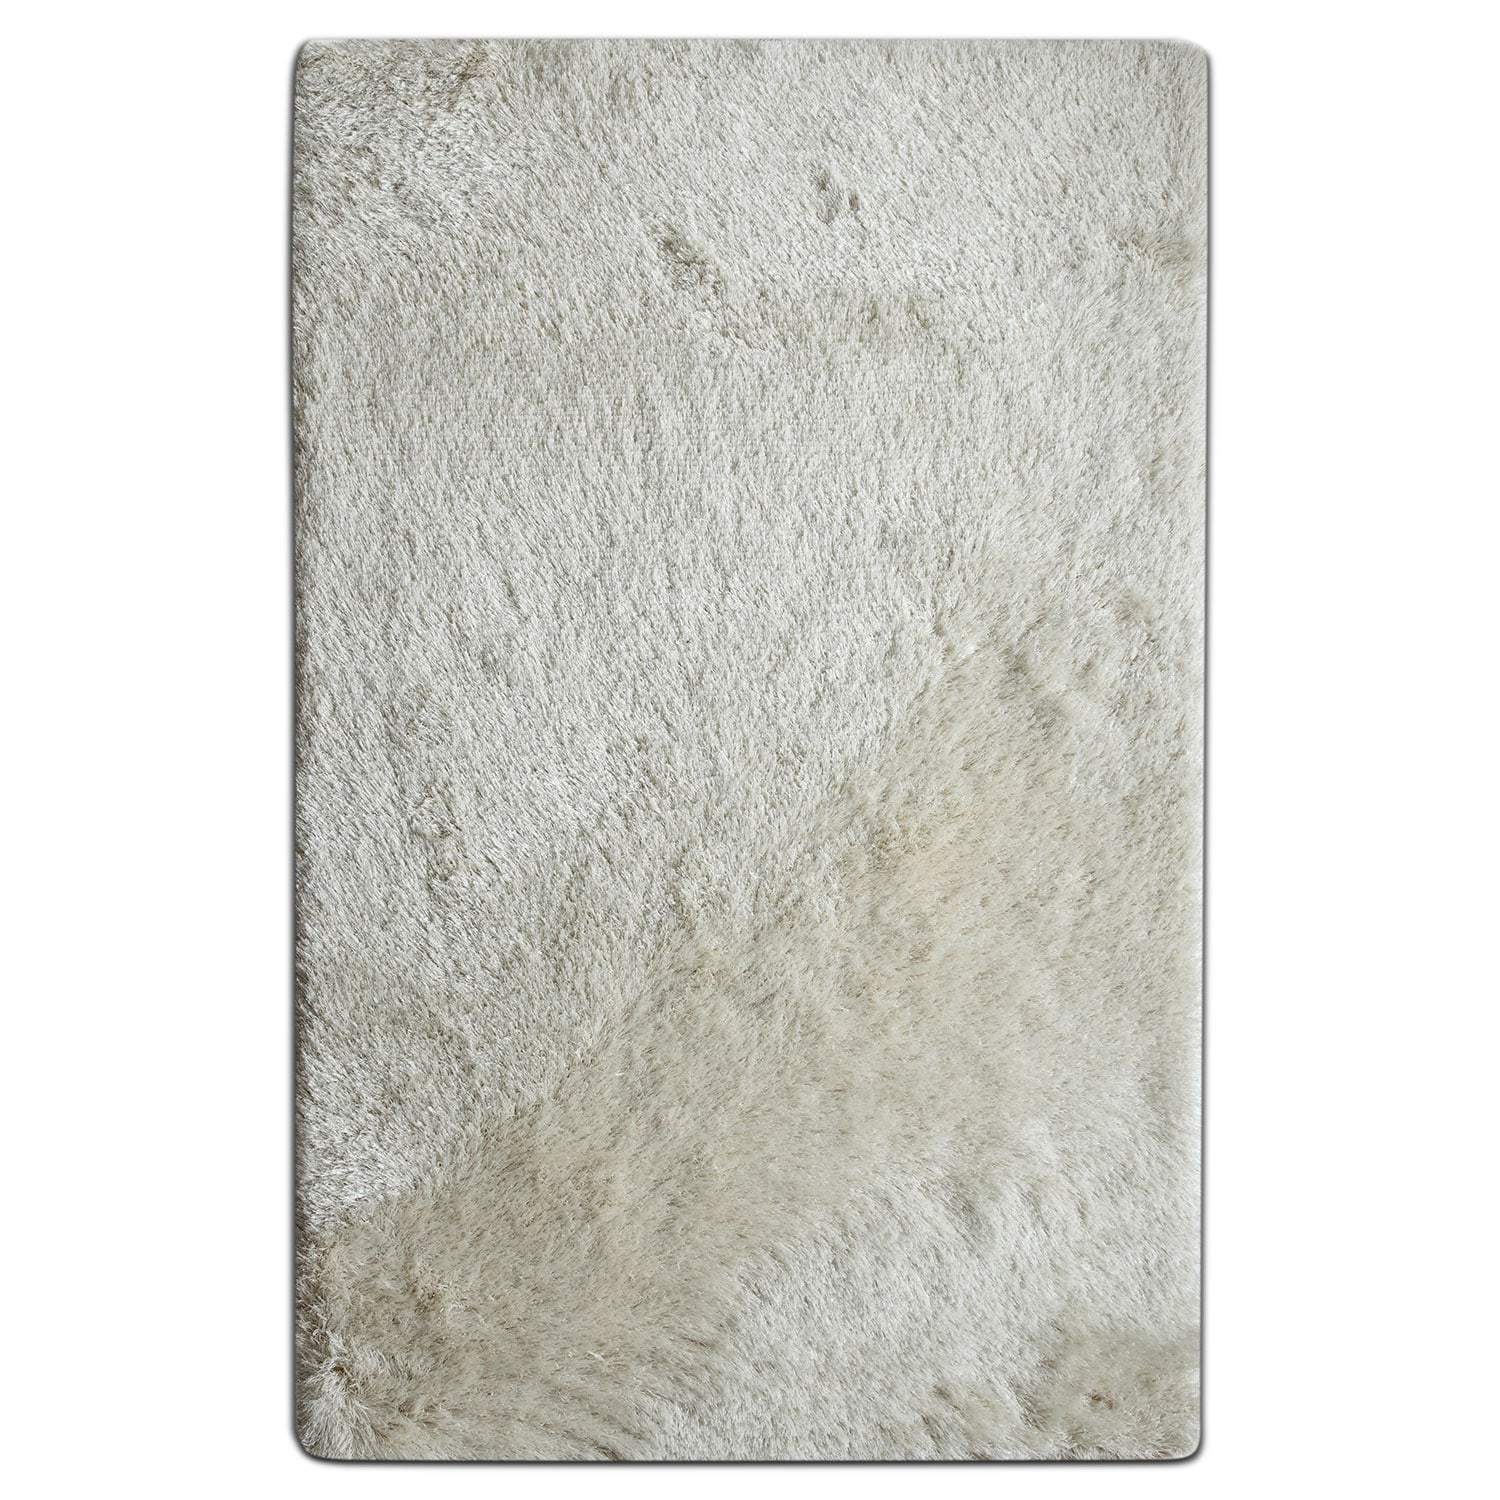 Rugs - Luxe 8' x 10' Area Rug - Ivory